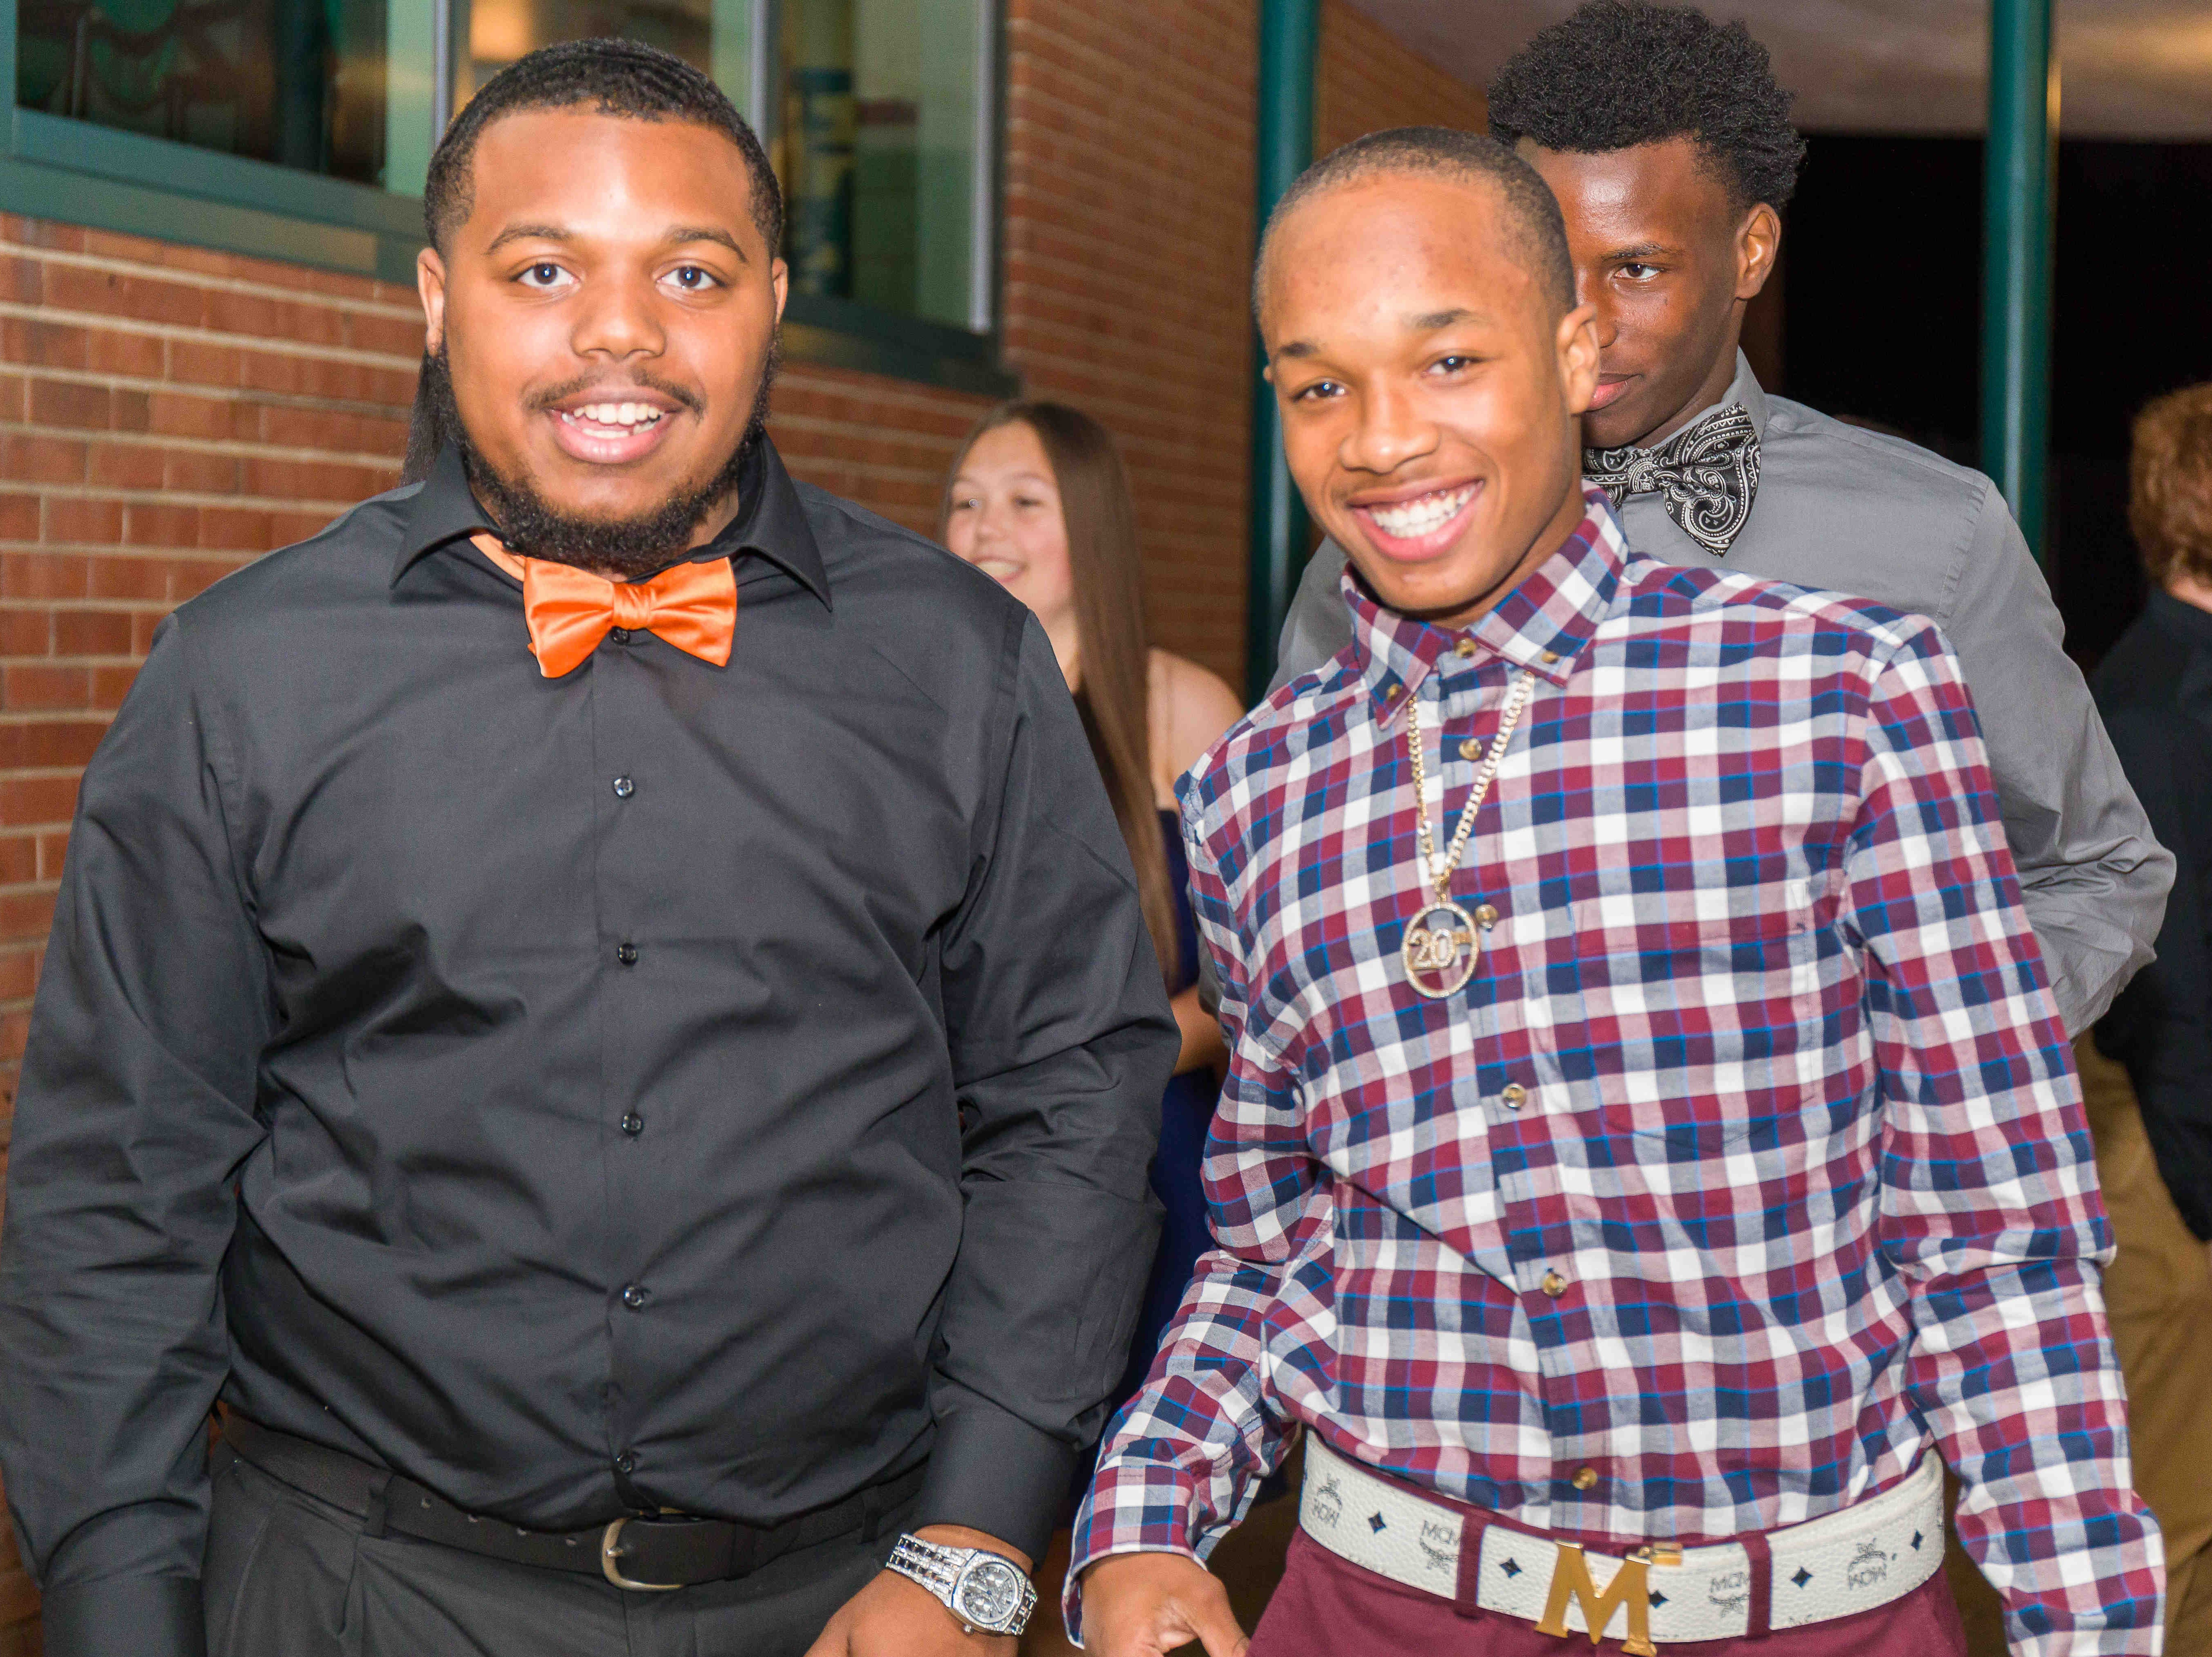 Students arrive at the Mount Pleasant Homecoming dance Saturday, Oct. 13, 2018, at the school.